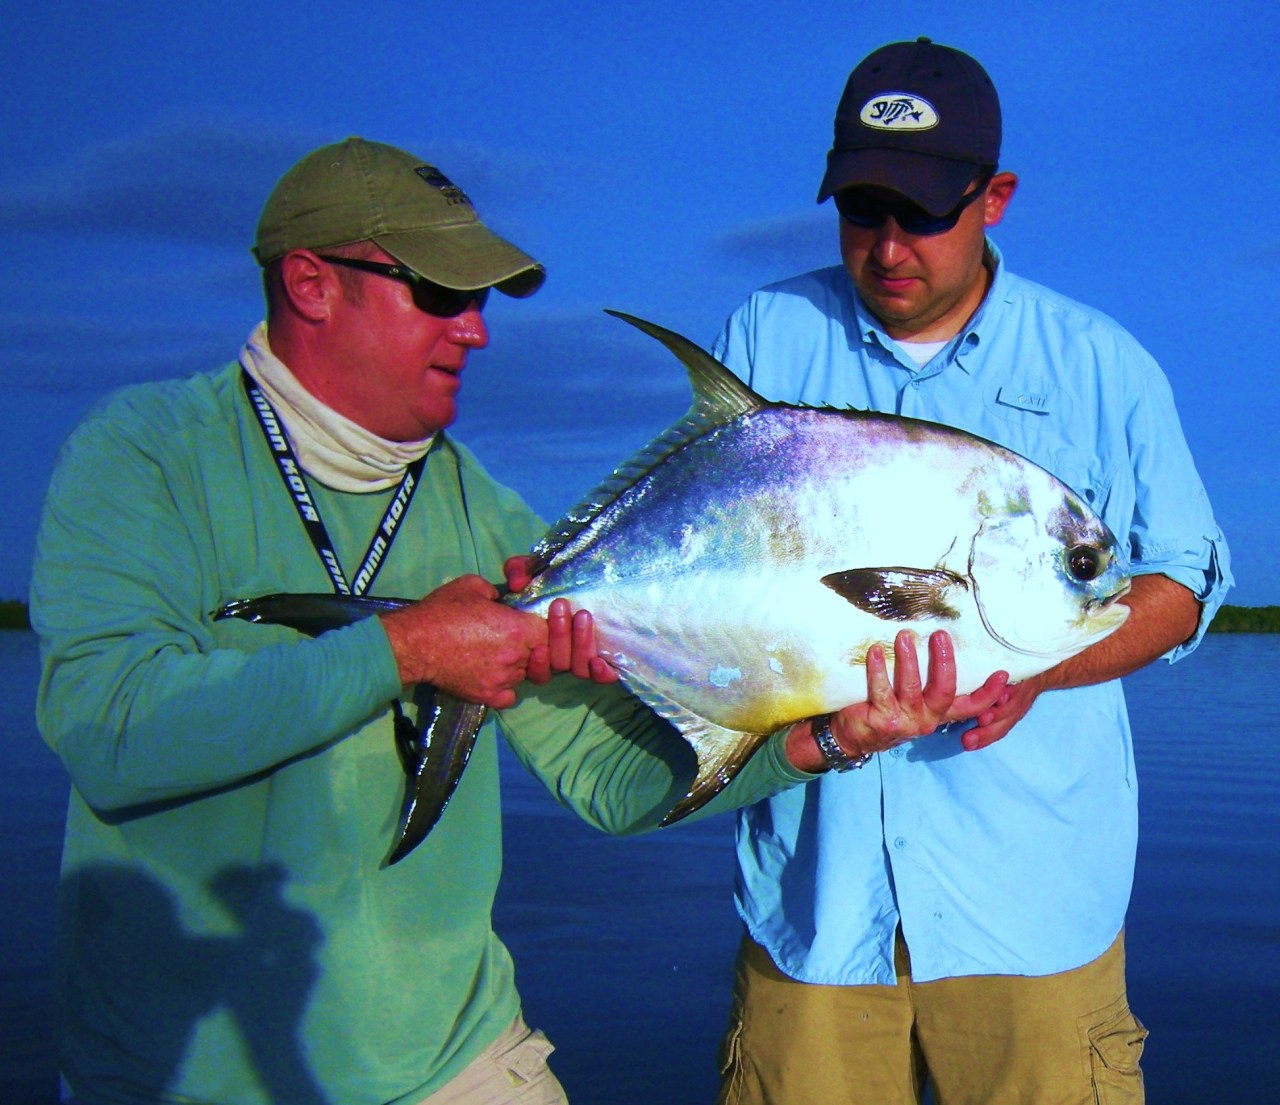 South florida outdoor adventures for fishing sport for Marco island deep sea fishing